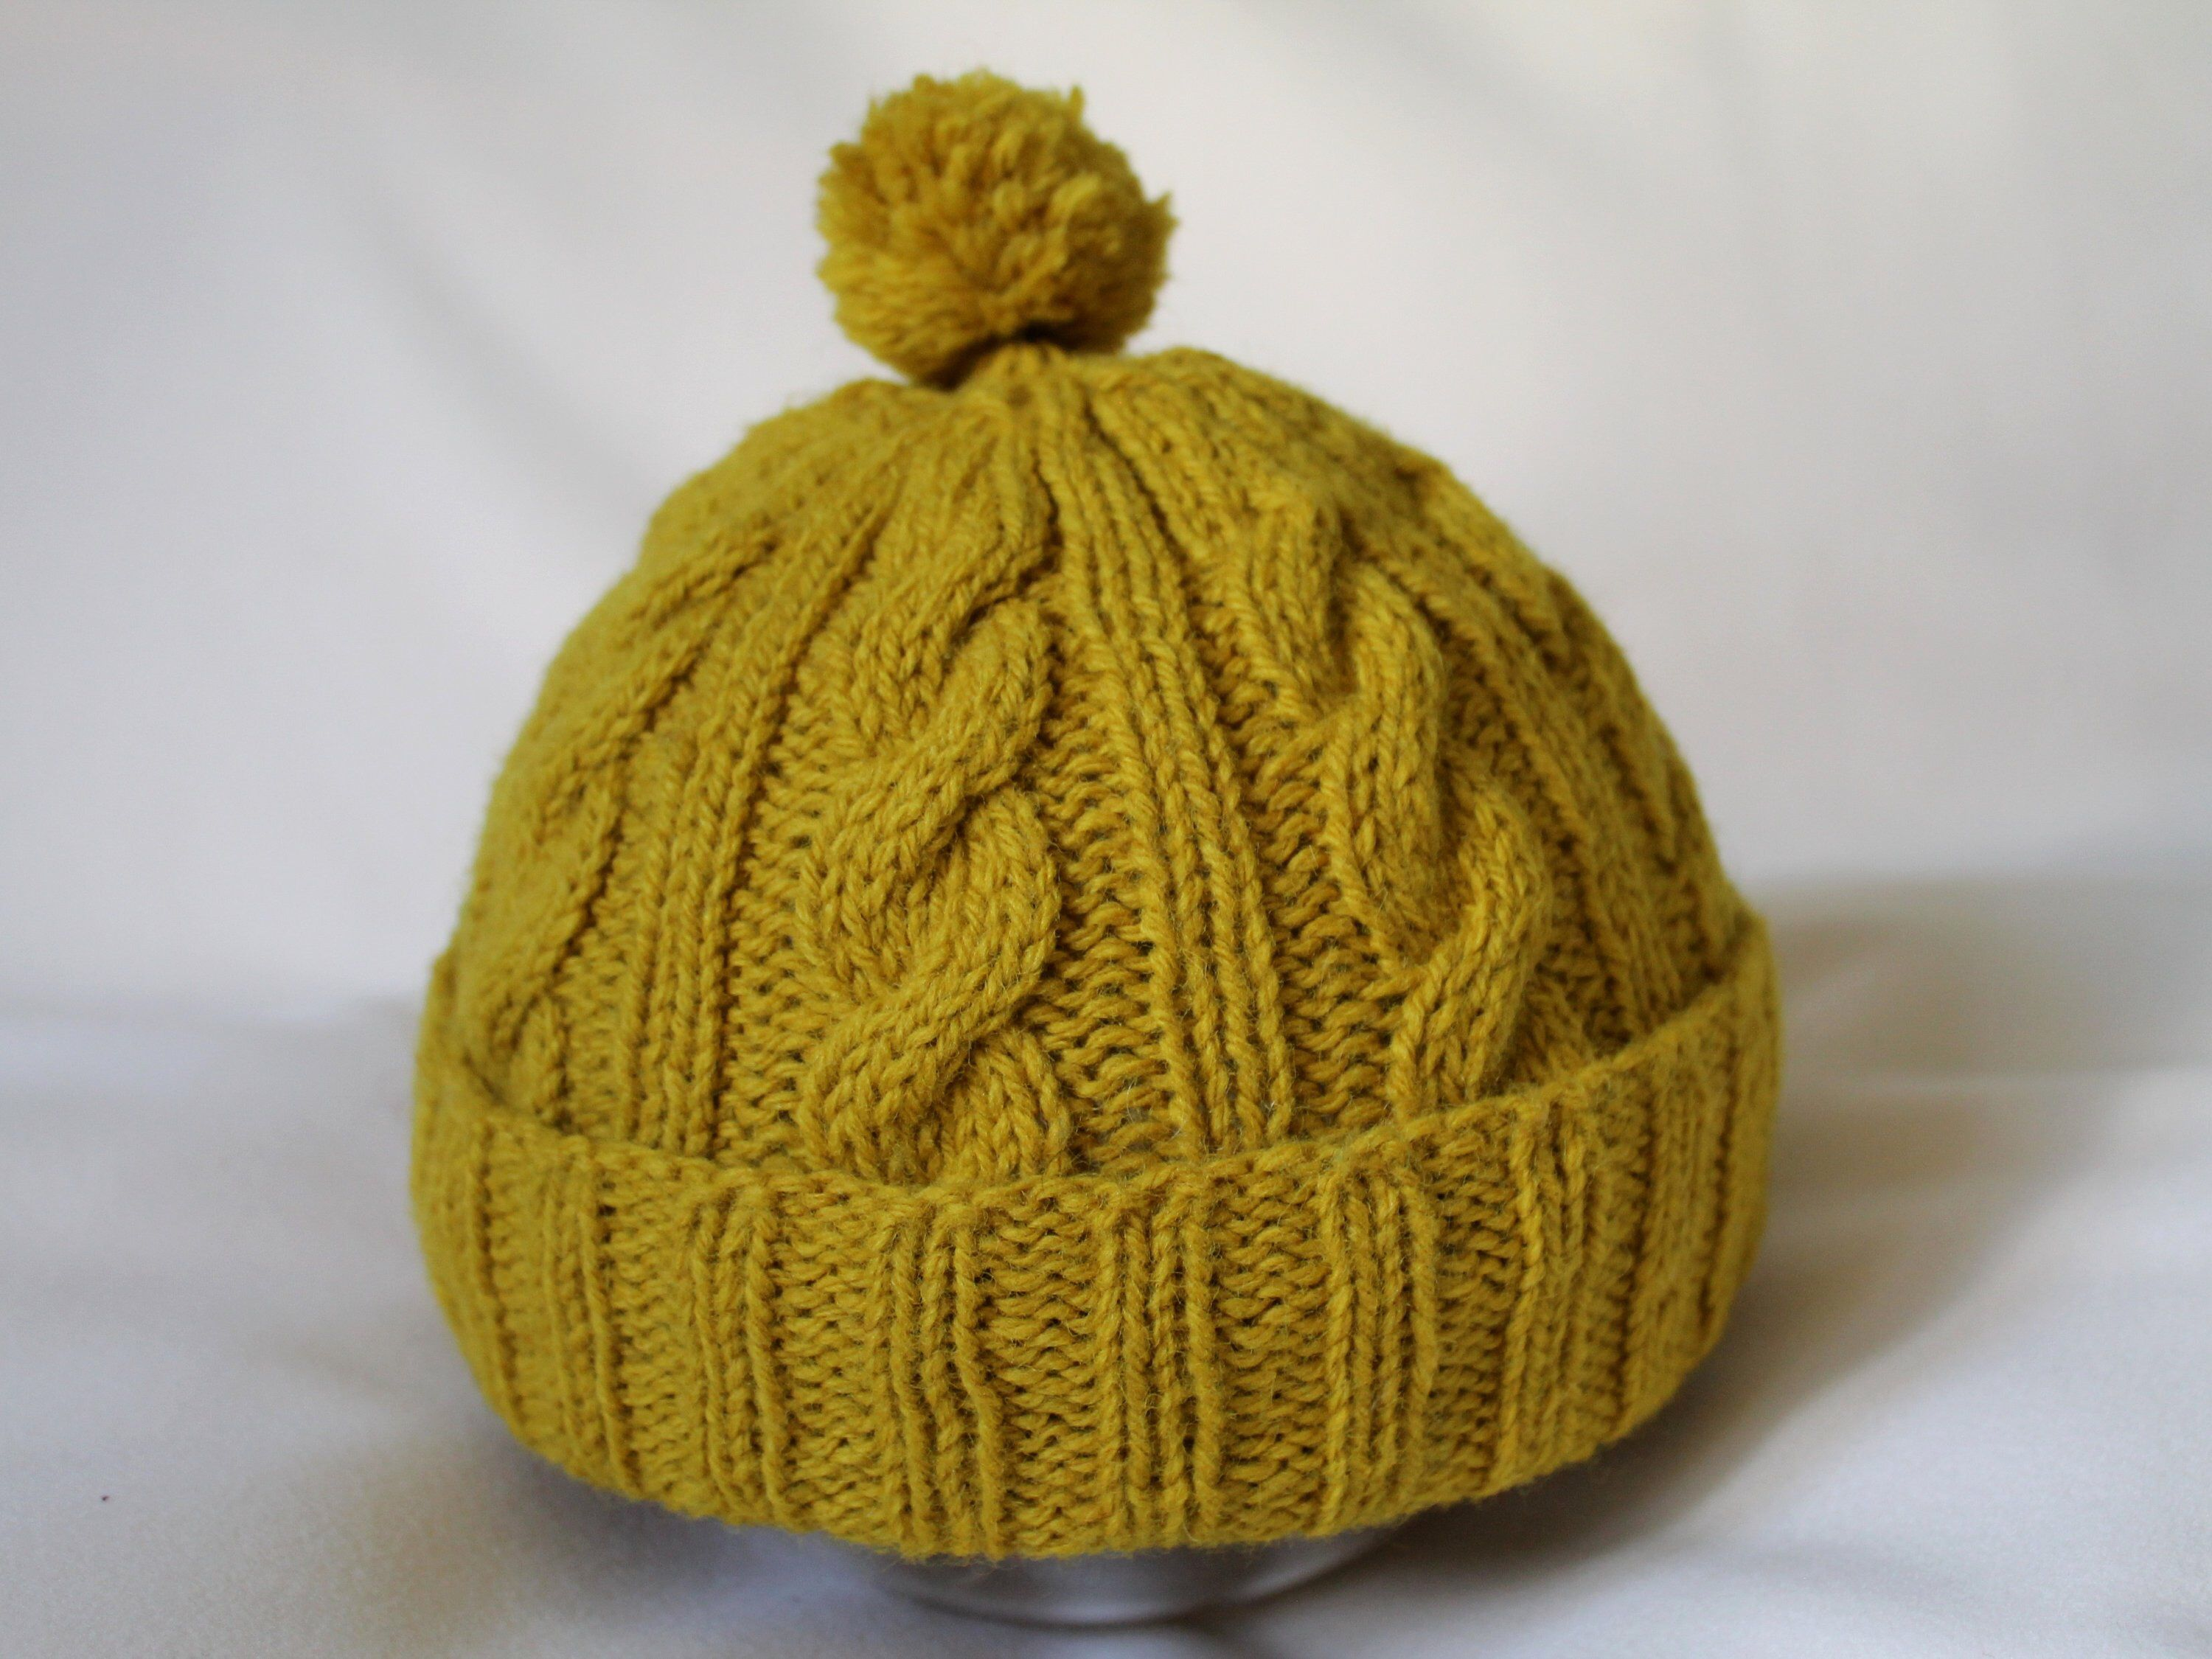 82e174c15c1 You can never have enough hand knitted hats for winter weather from my   etsy shop  Traditional Knitted Cable Hat 100% Wool  woolyhat  cablehat   knittedhat ...